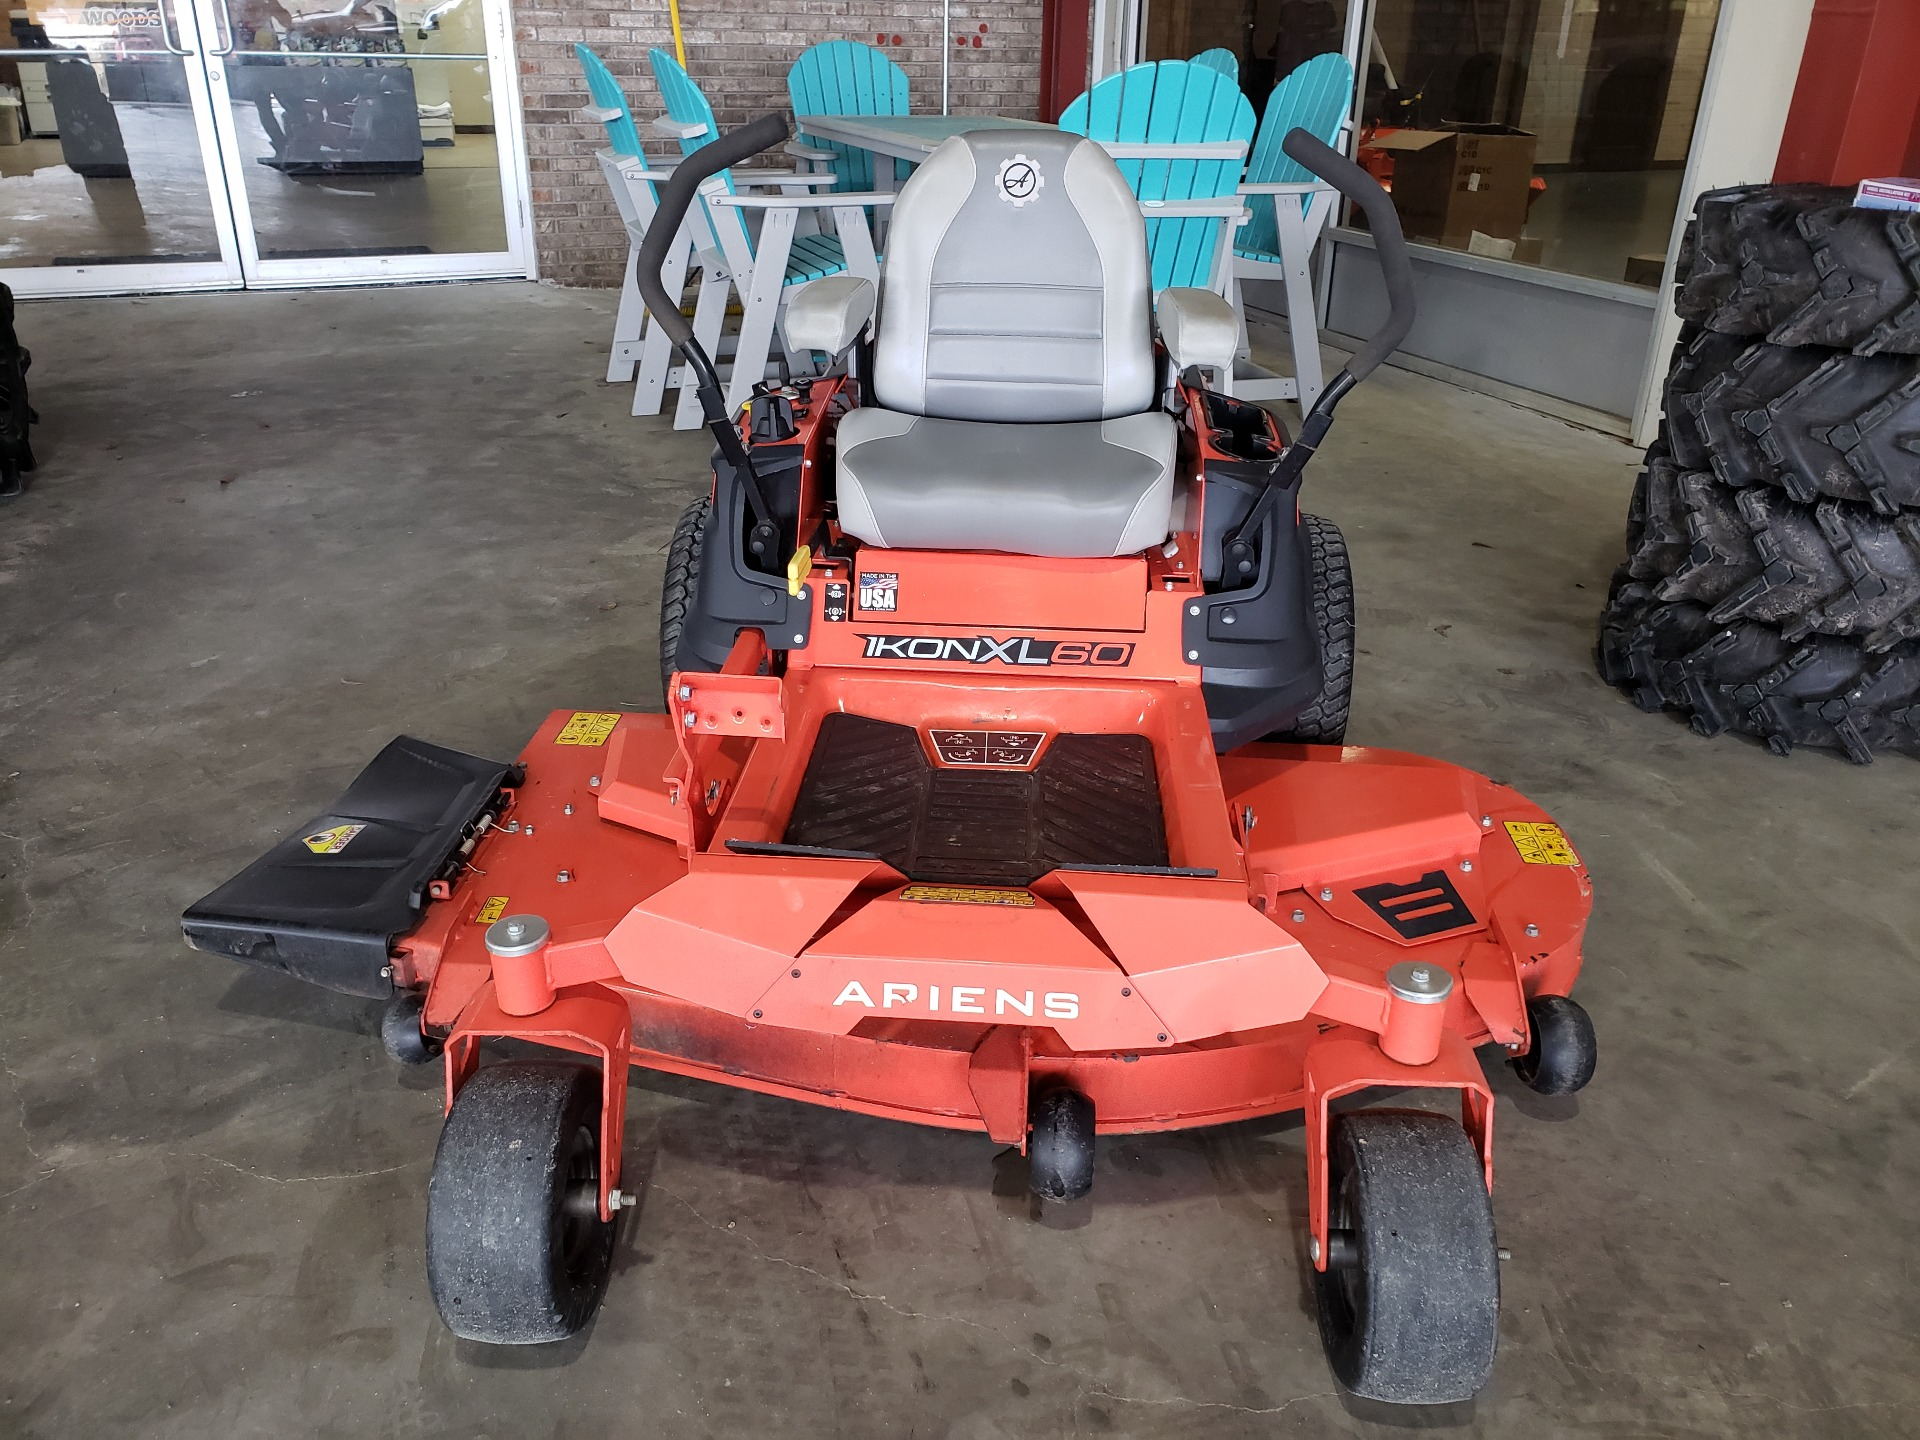 2019 Ariens Ikon XL 60 in. Kawasaki 24 hp in Saucier, Mississippi - Photo 2